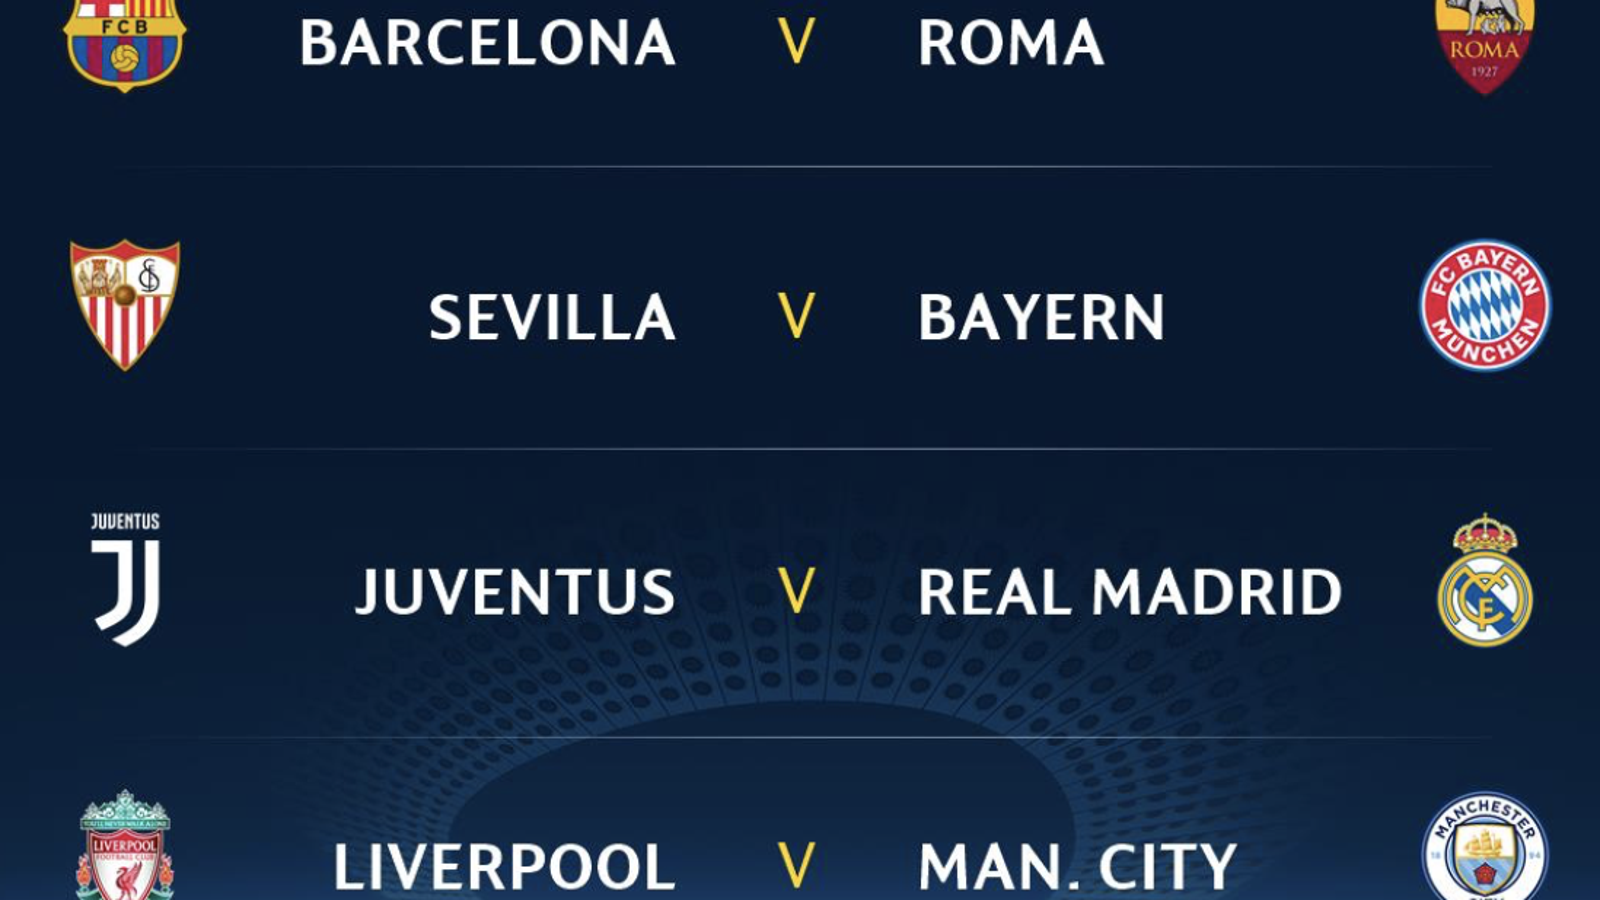 Here S The Champions League Quarterfinal Draw